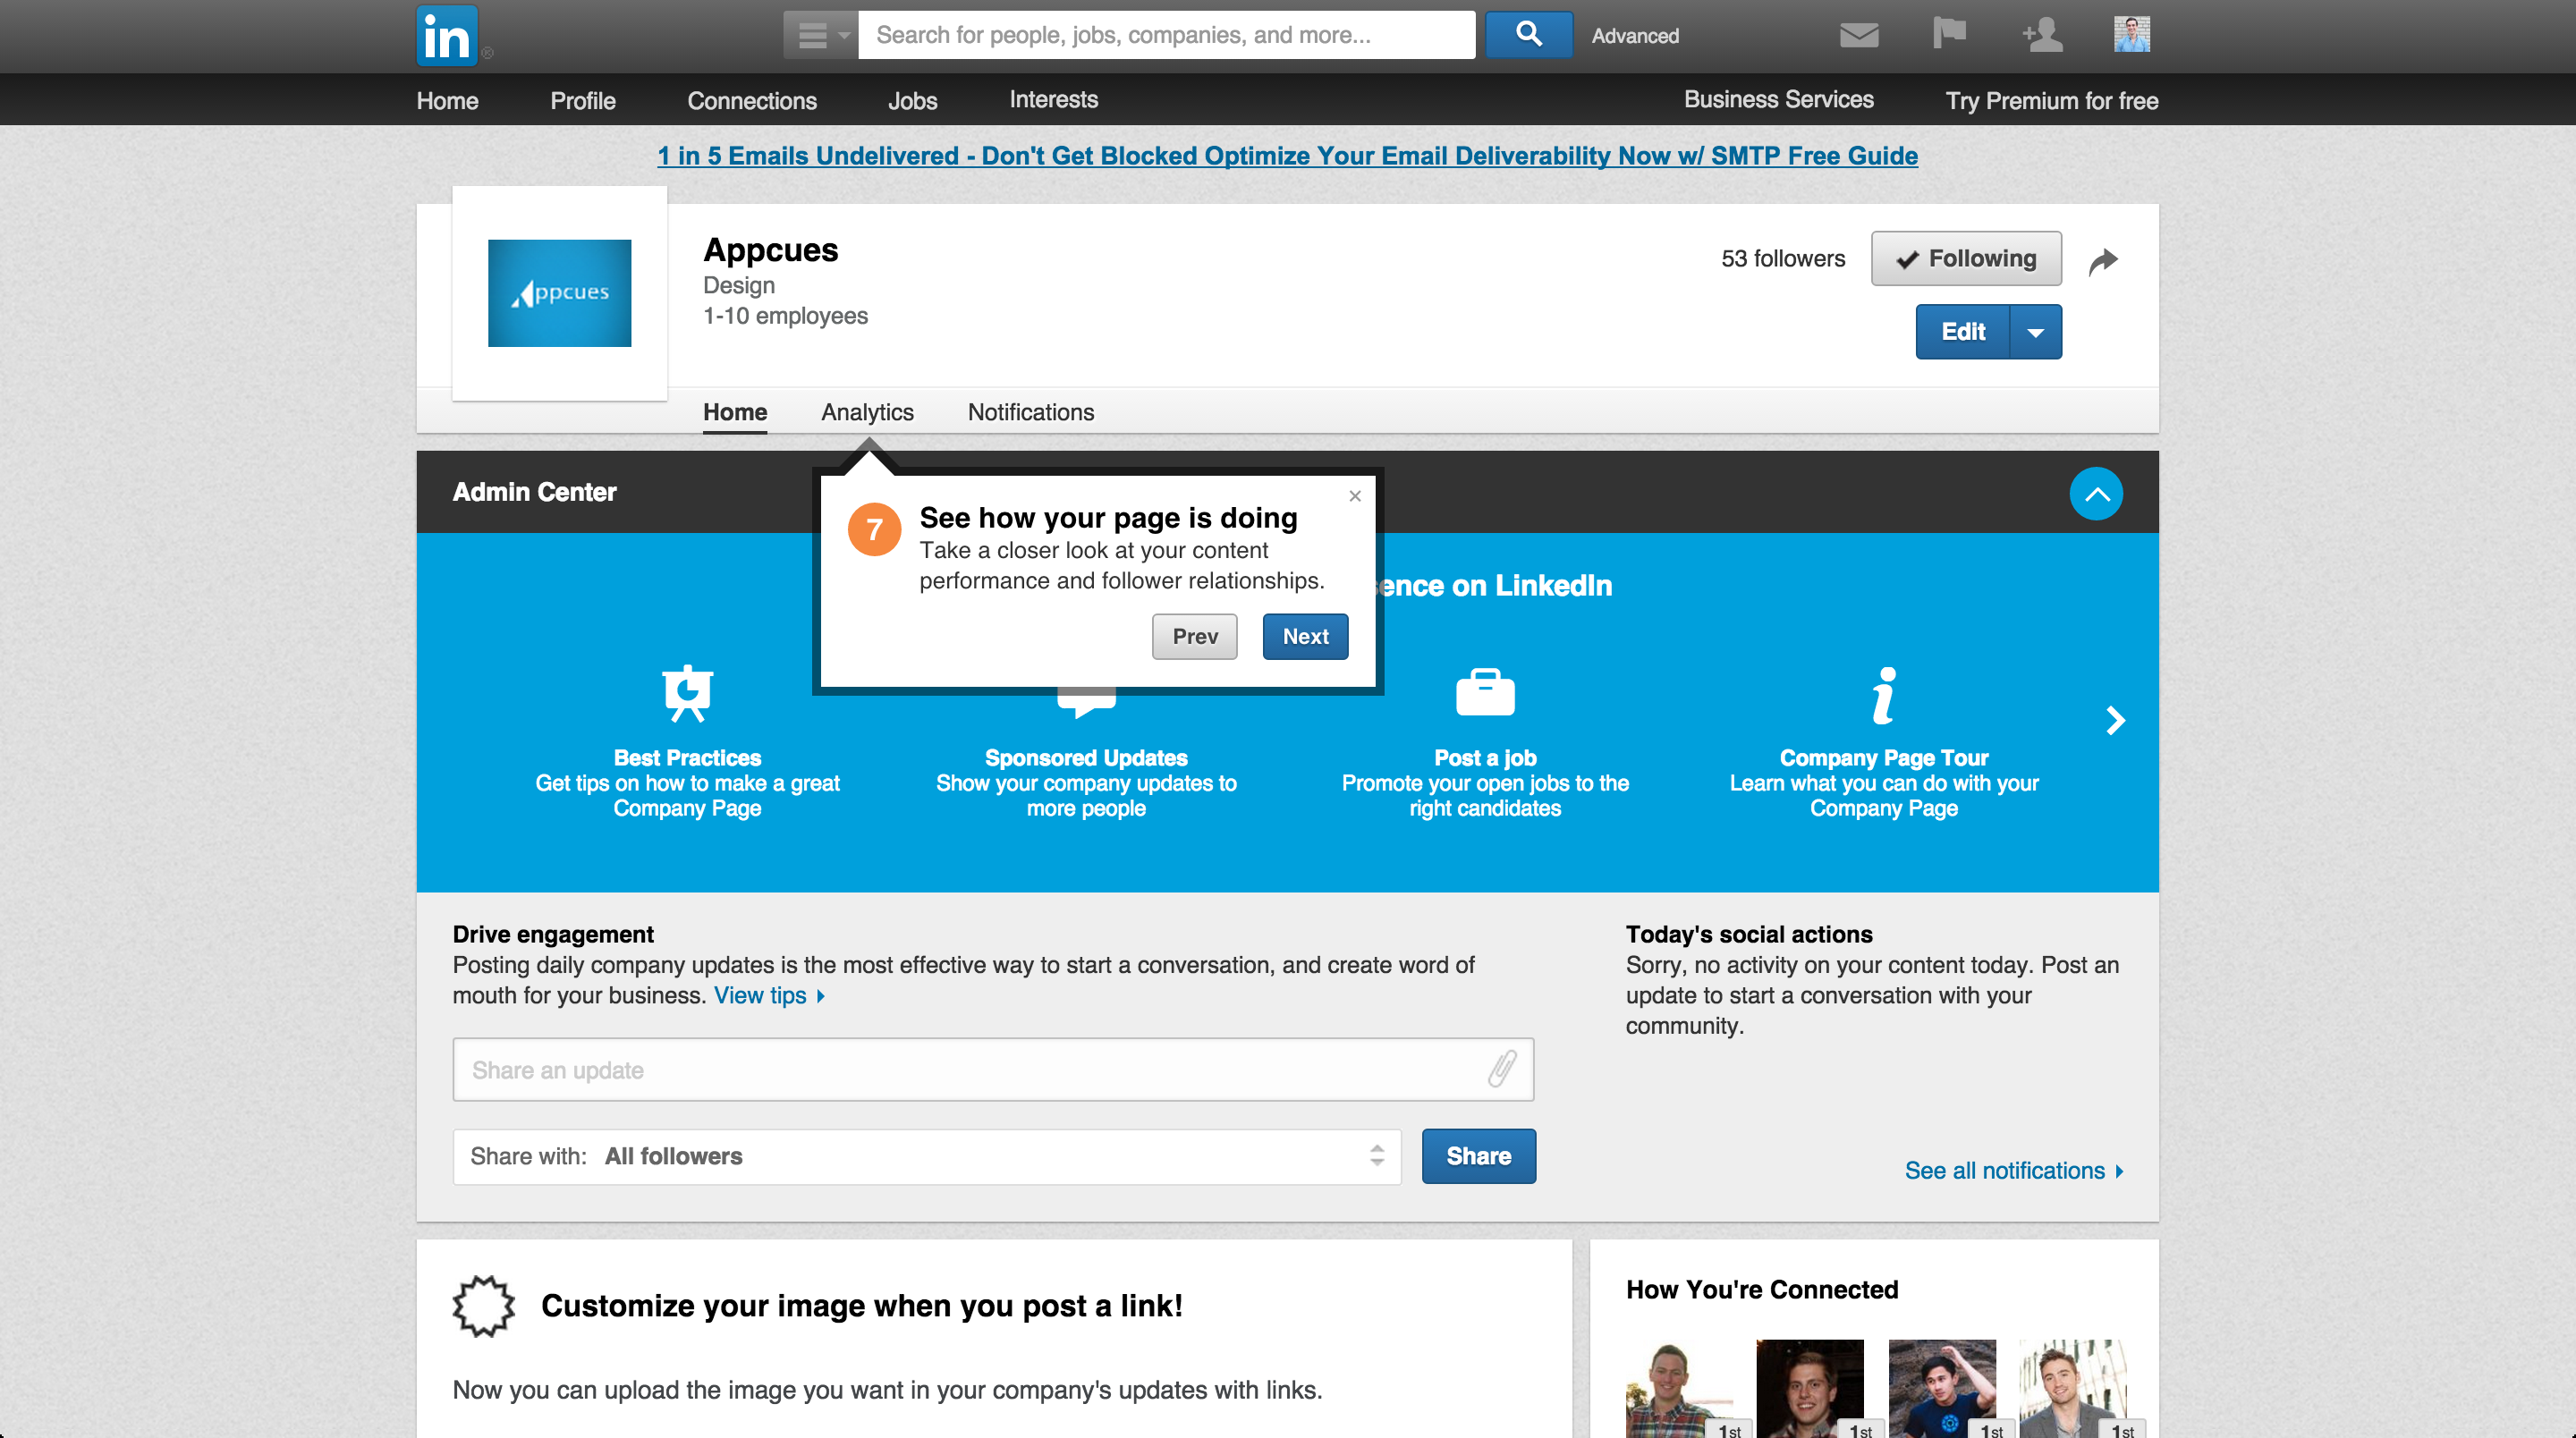 LinkedIn product tour company page 7